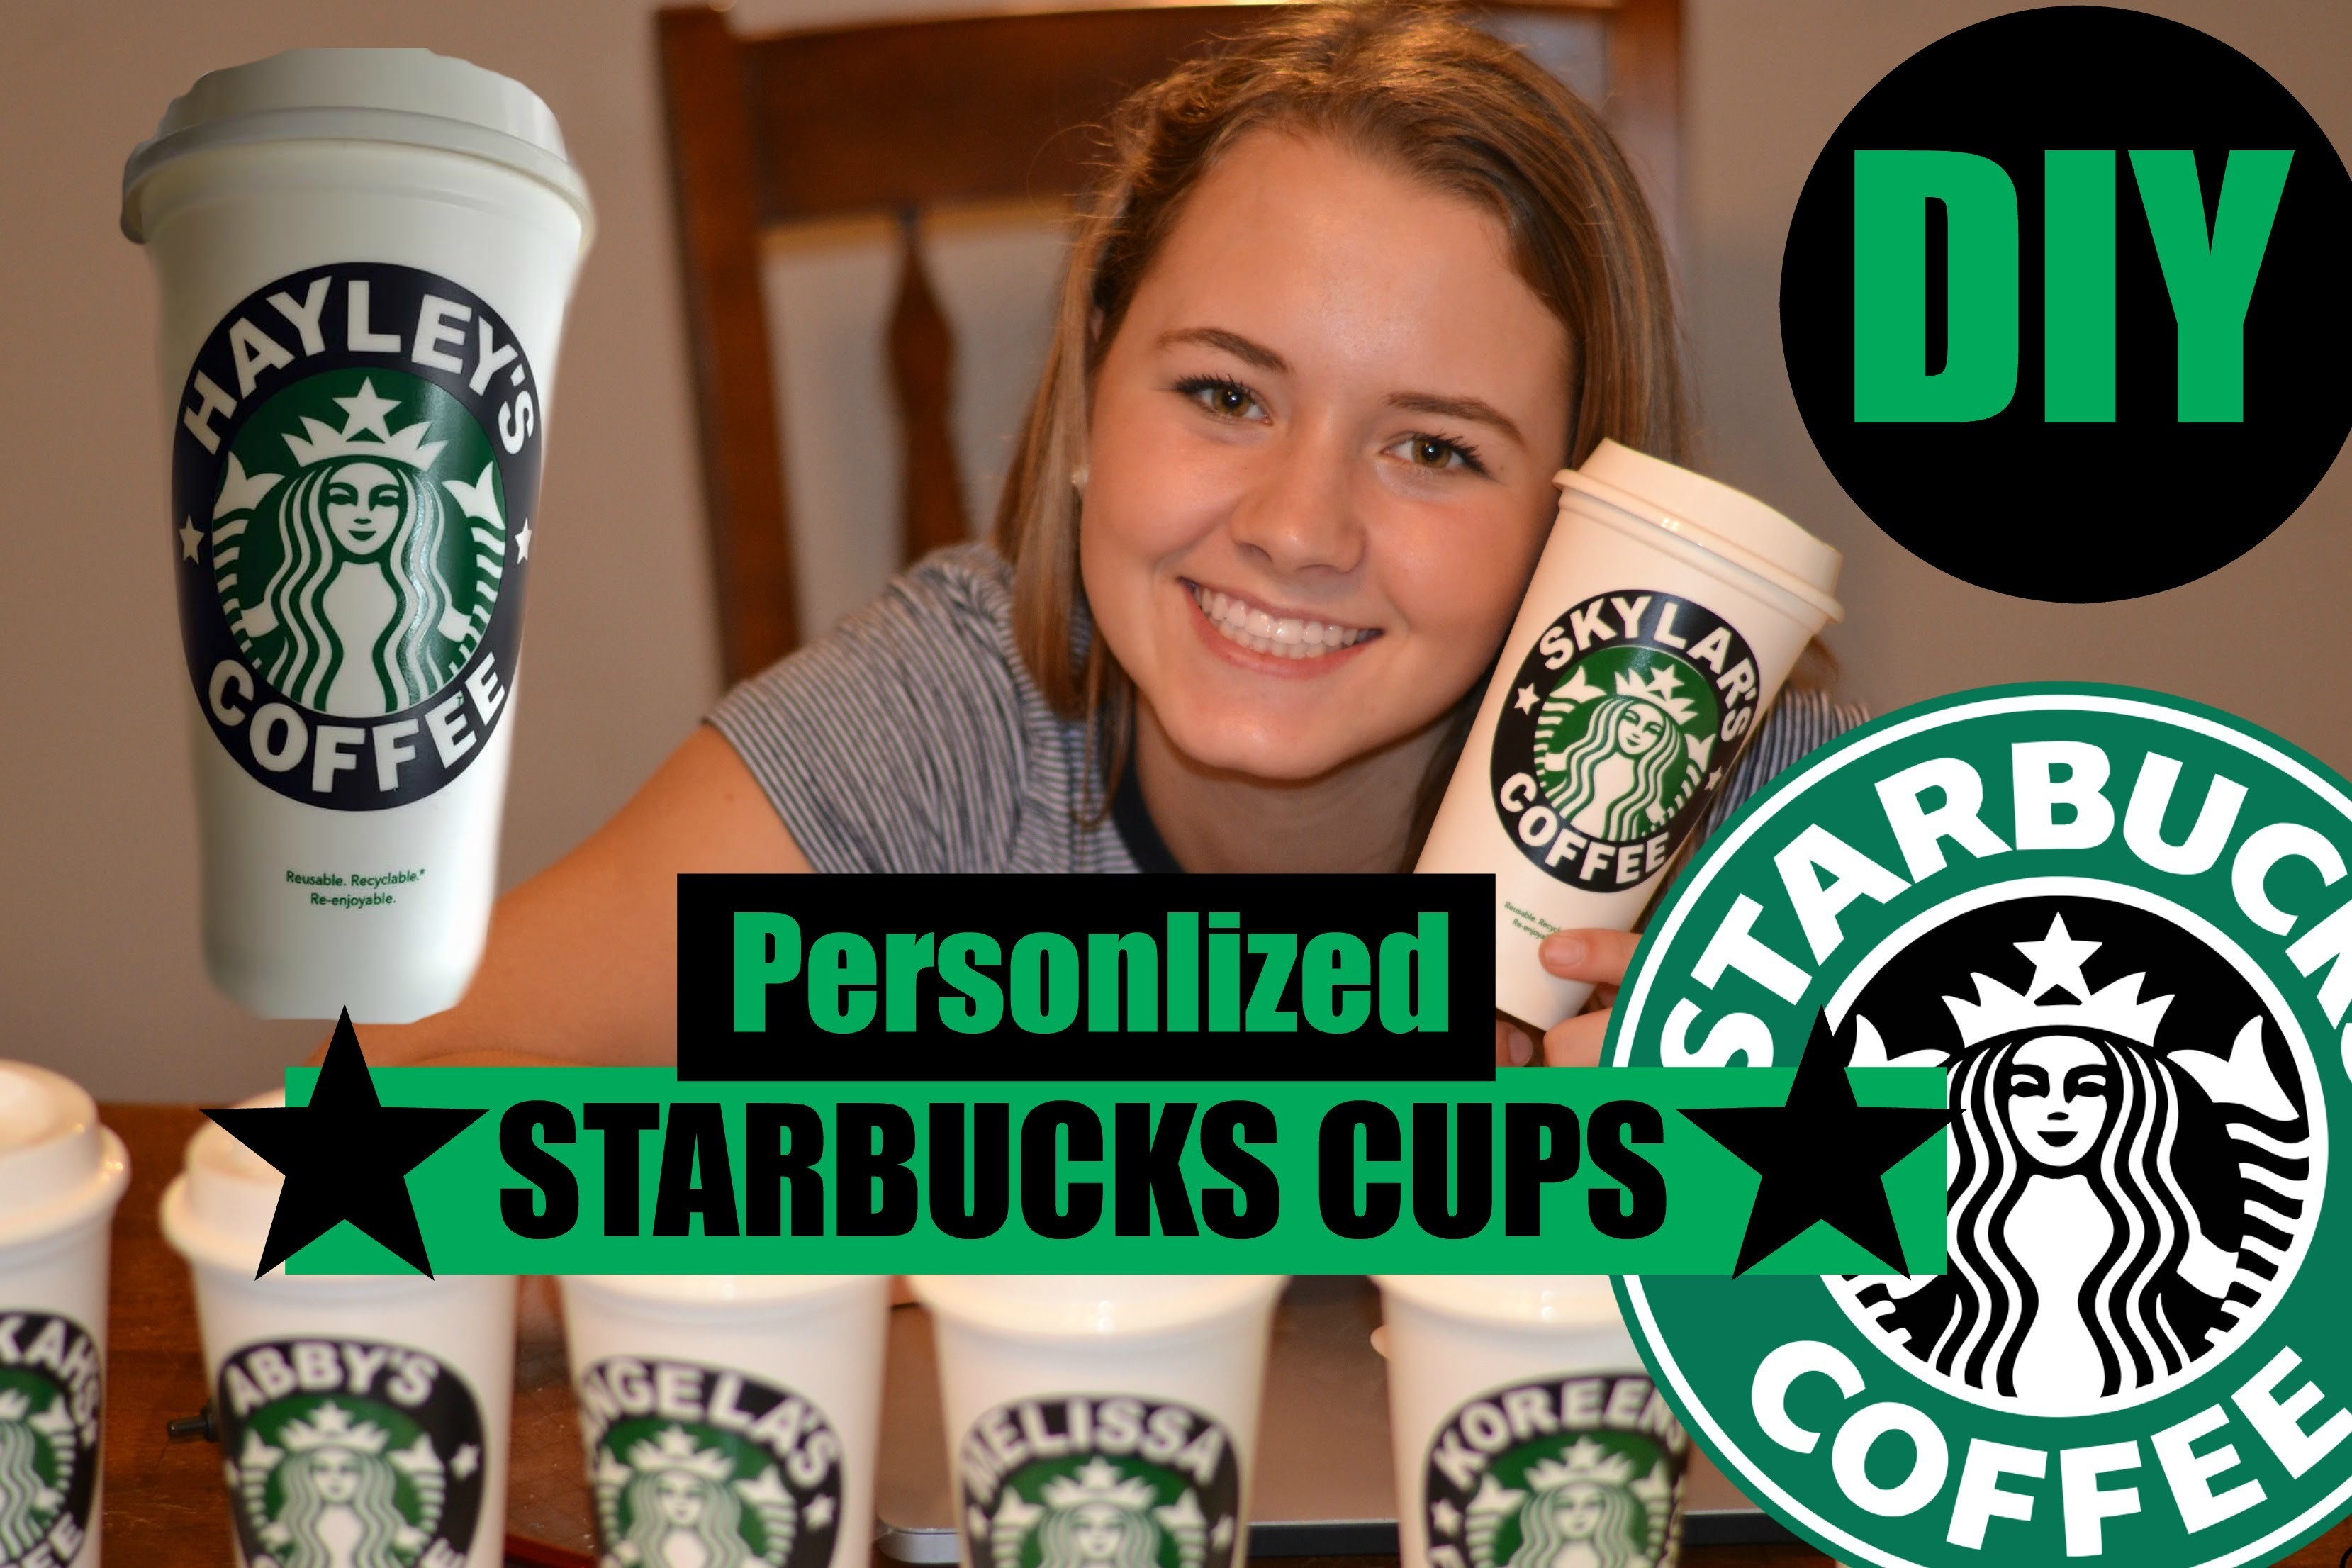 DIY - PERSONLIZED STARBUCKS CUPS